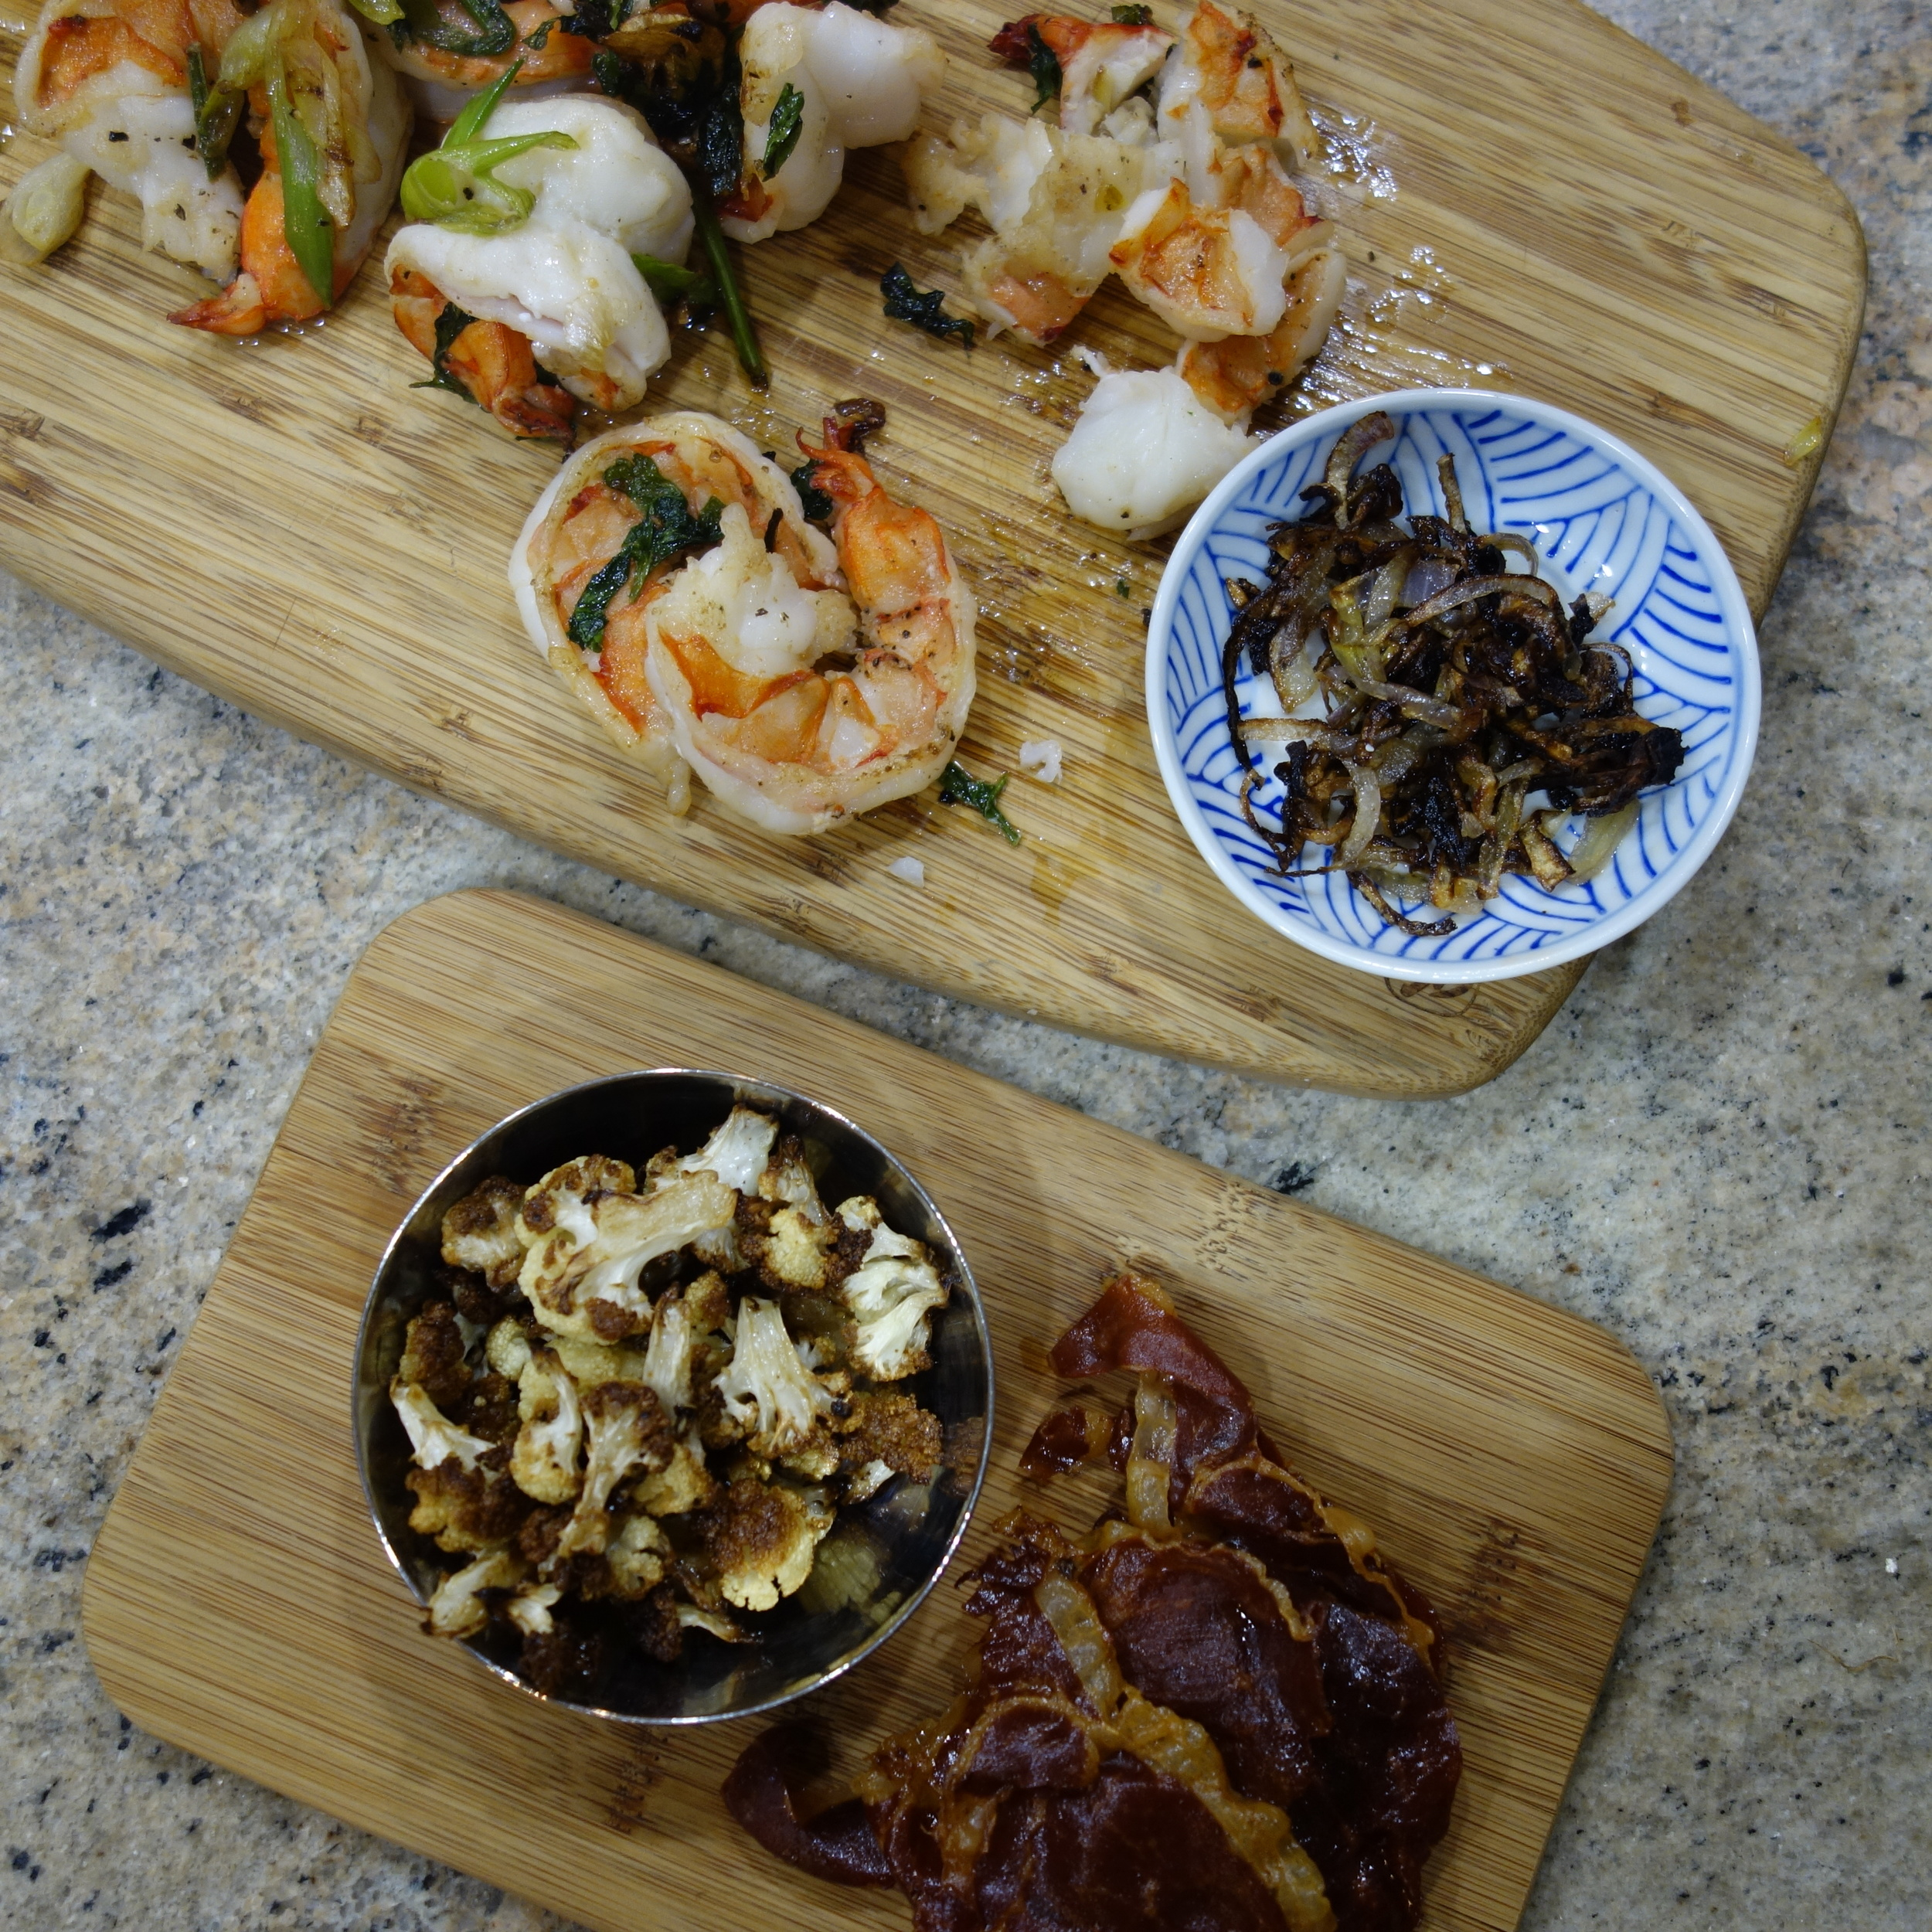 Oh, the possibilities: Grilled shrimp, caramelized shallots, roasted cauliflower, crispy Serrano